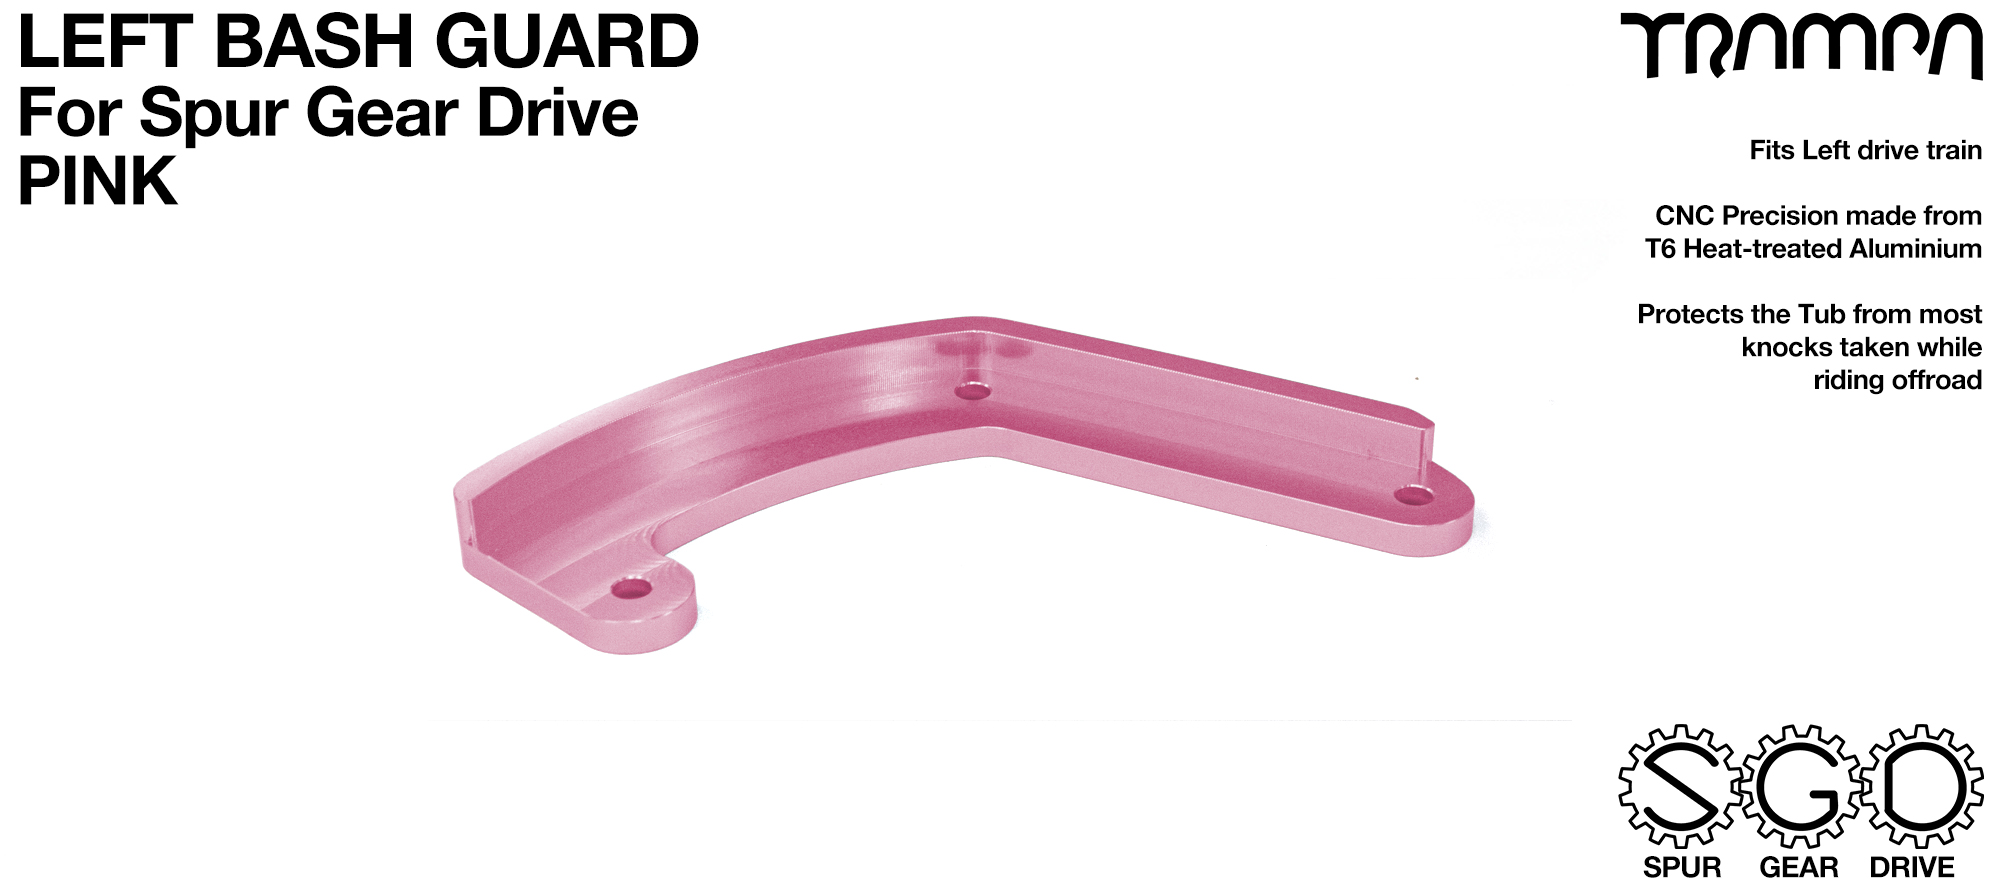 MkII Spur Gear Drive Bash Guard - LEFT Side - PINK